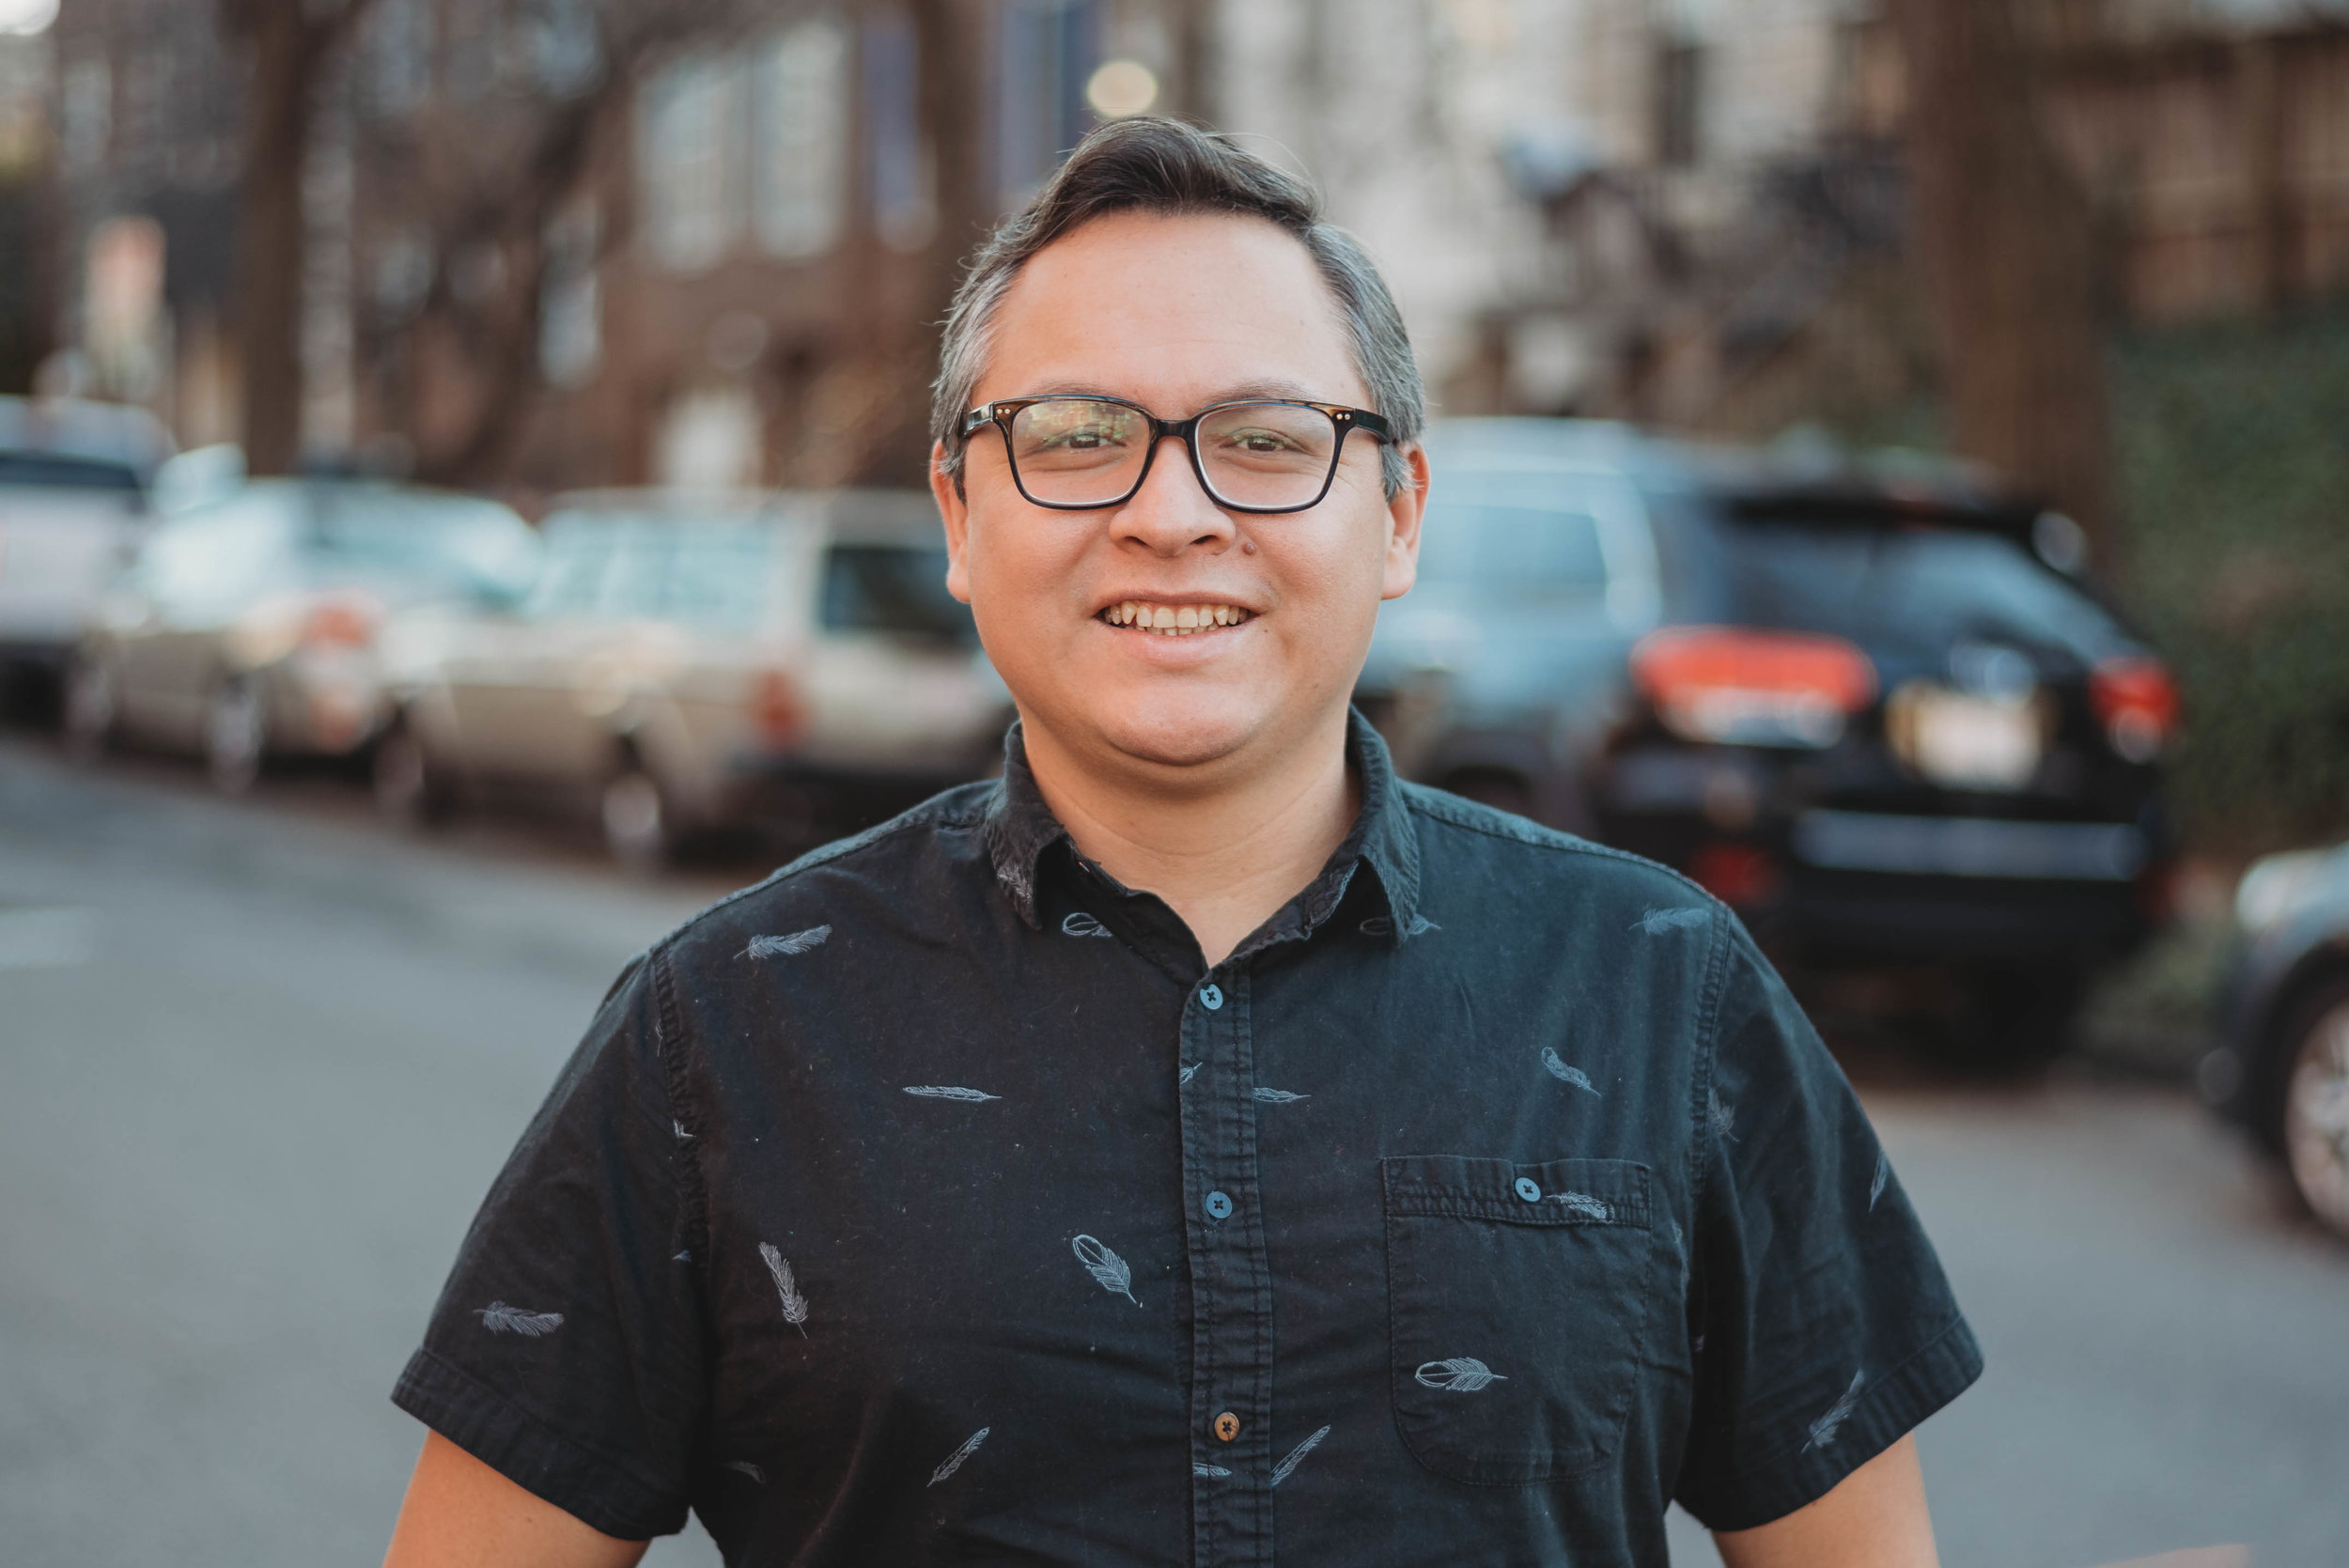 Chuy Rodriguez,,Associate Pastor Community & Church Planting - e. chuy@redemptionhilldc.orgtwitter: @jeykarcClick to learn more about Chuy.